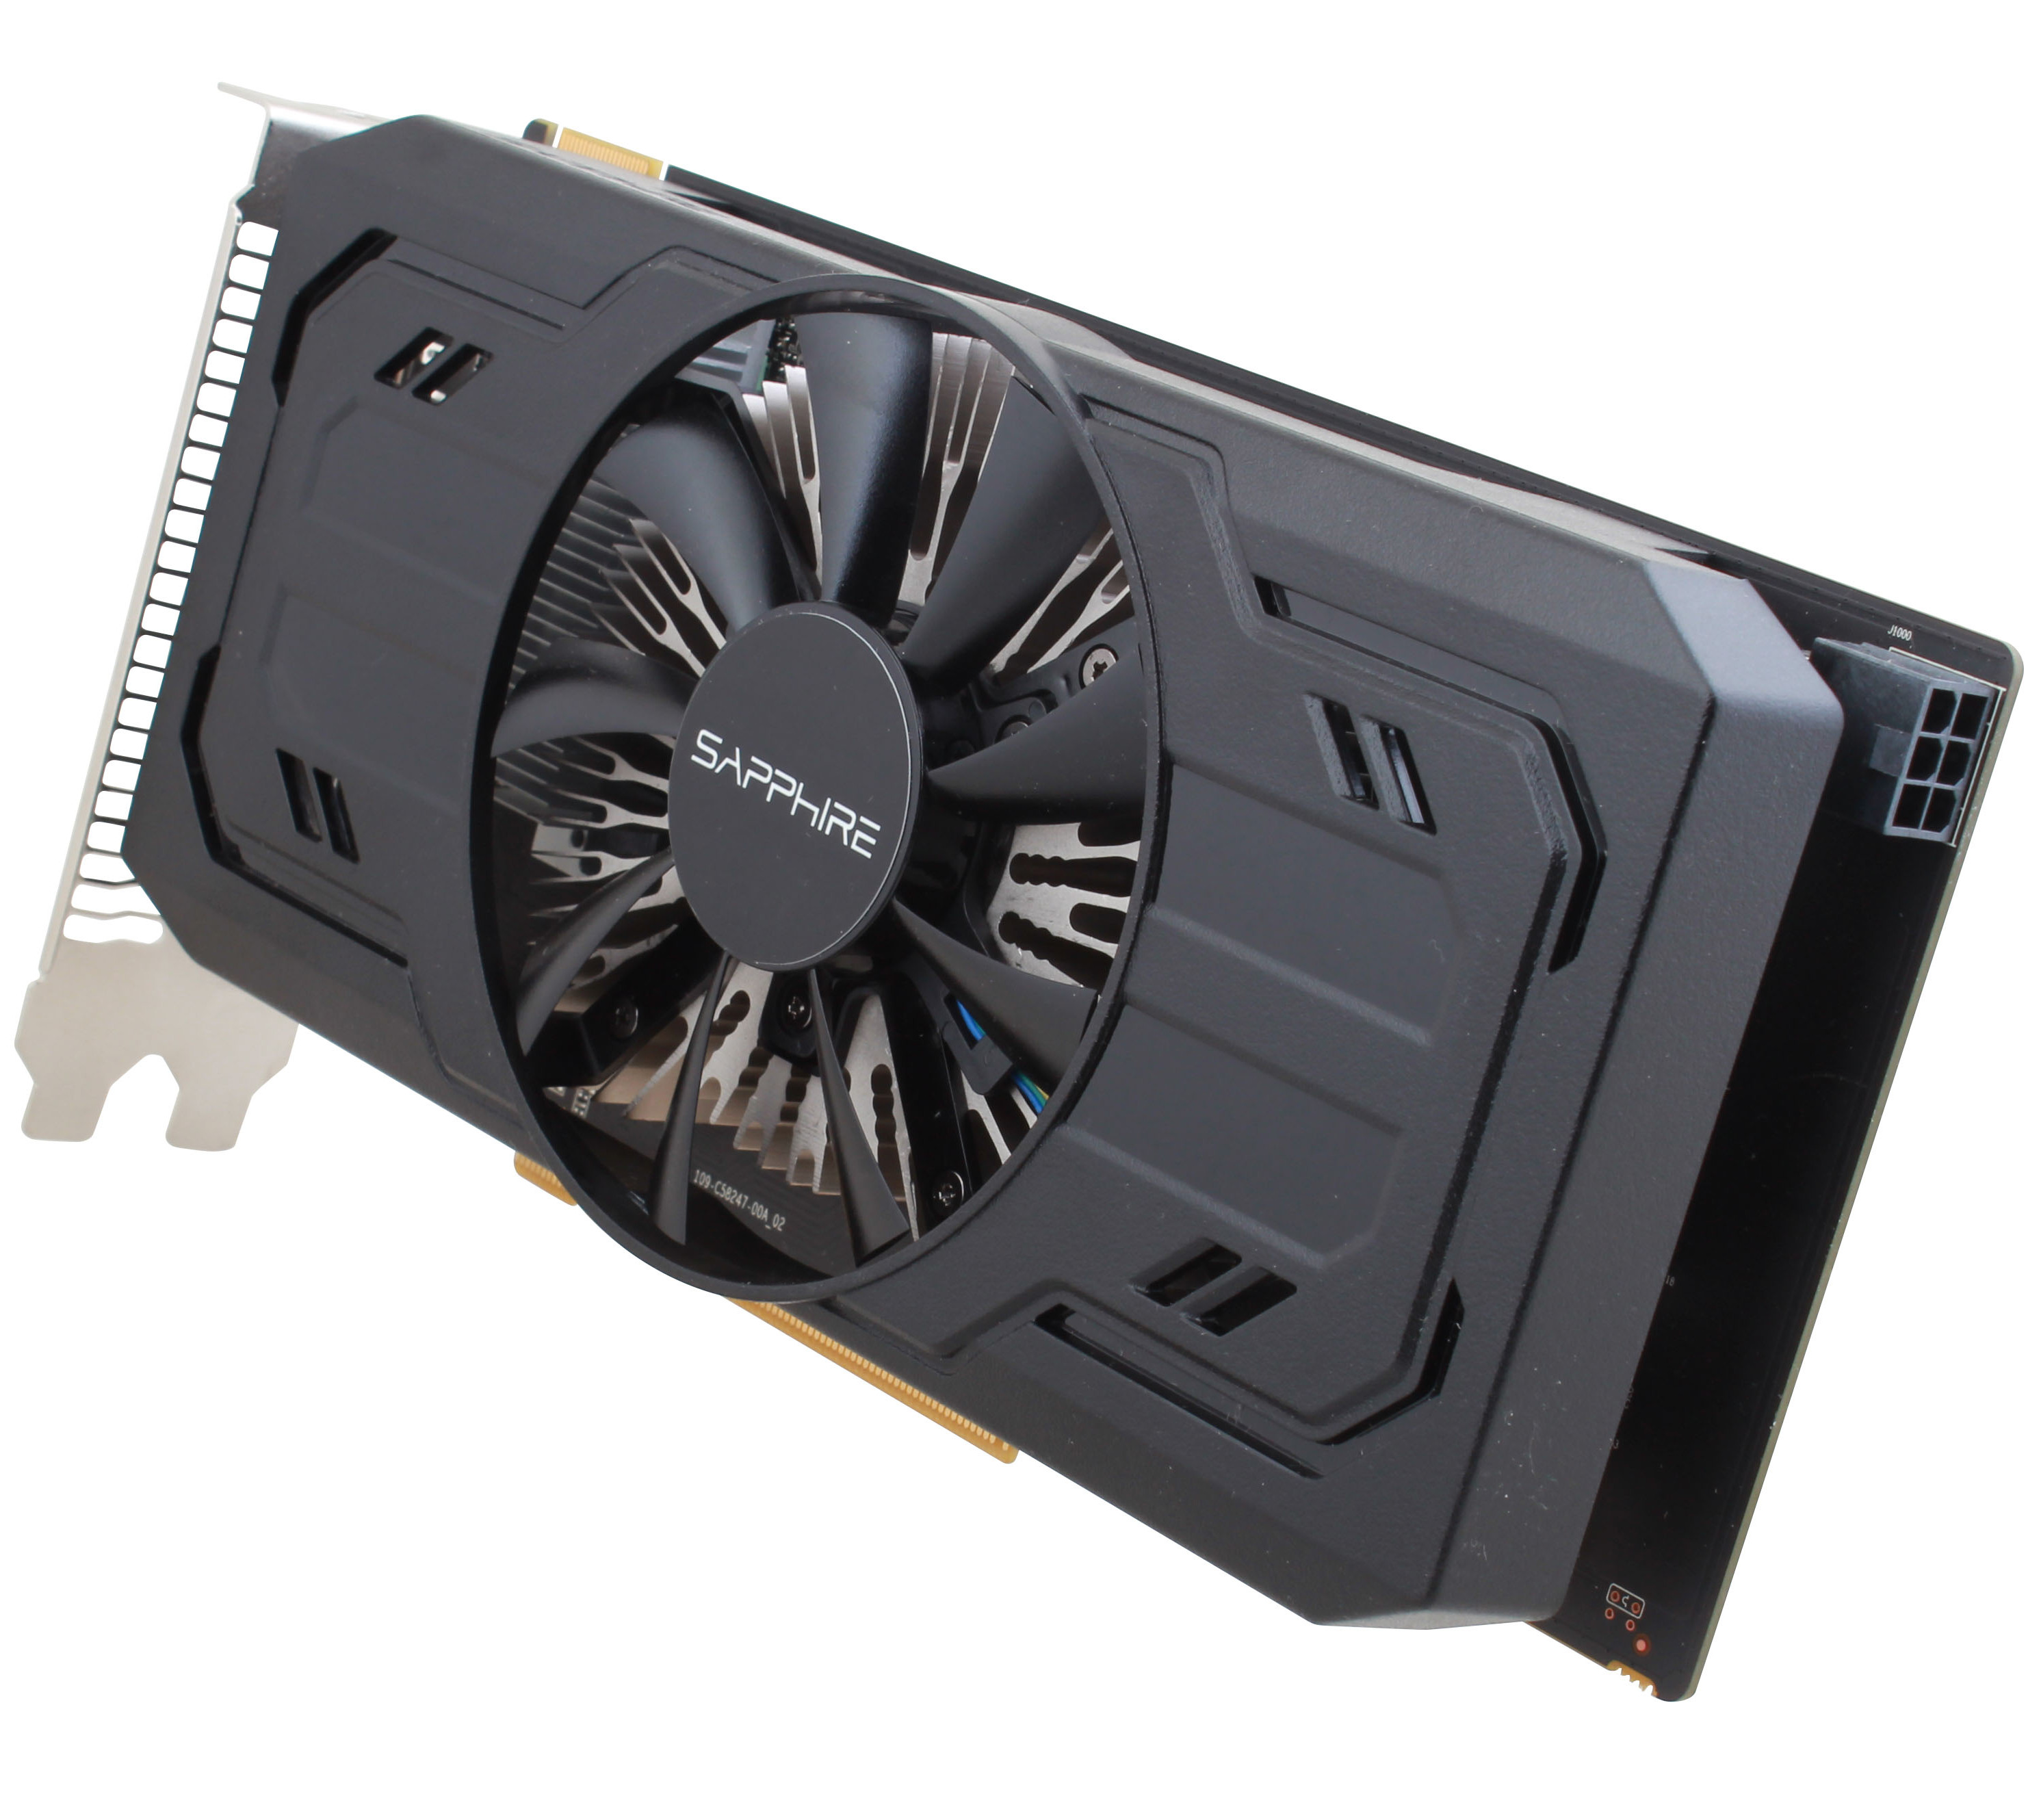 Sapphire Rolls Out Radeon R7 260X iCafe OC Graphics Card   TechPowerUp